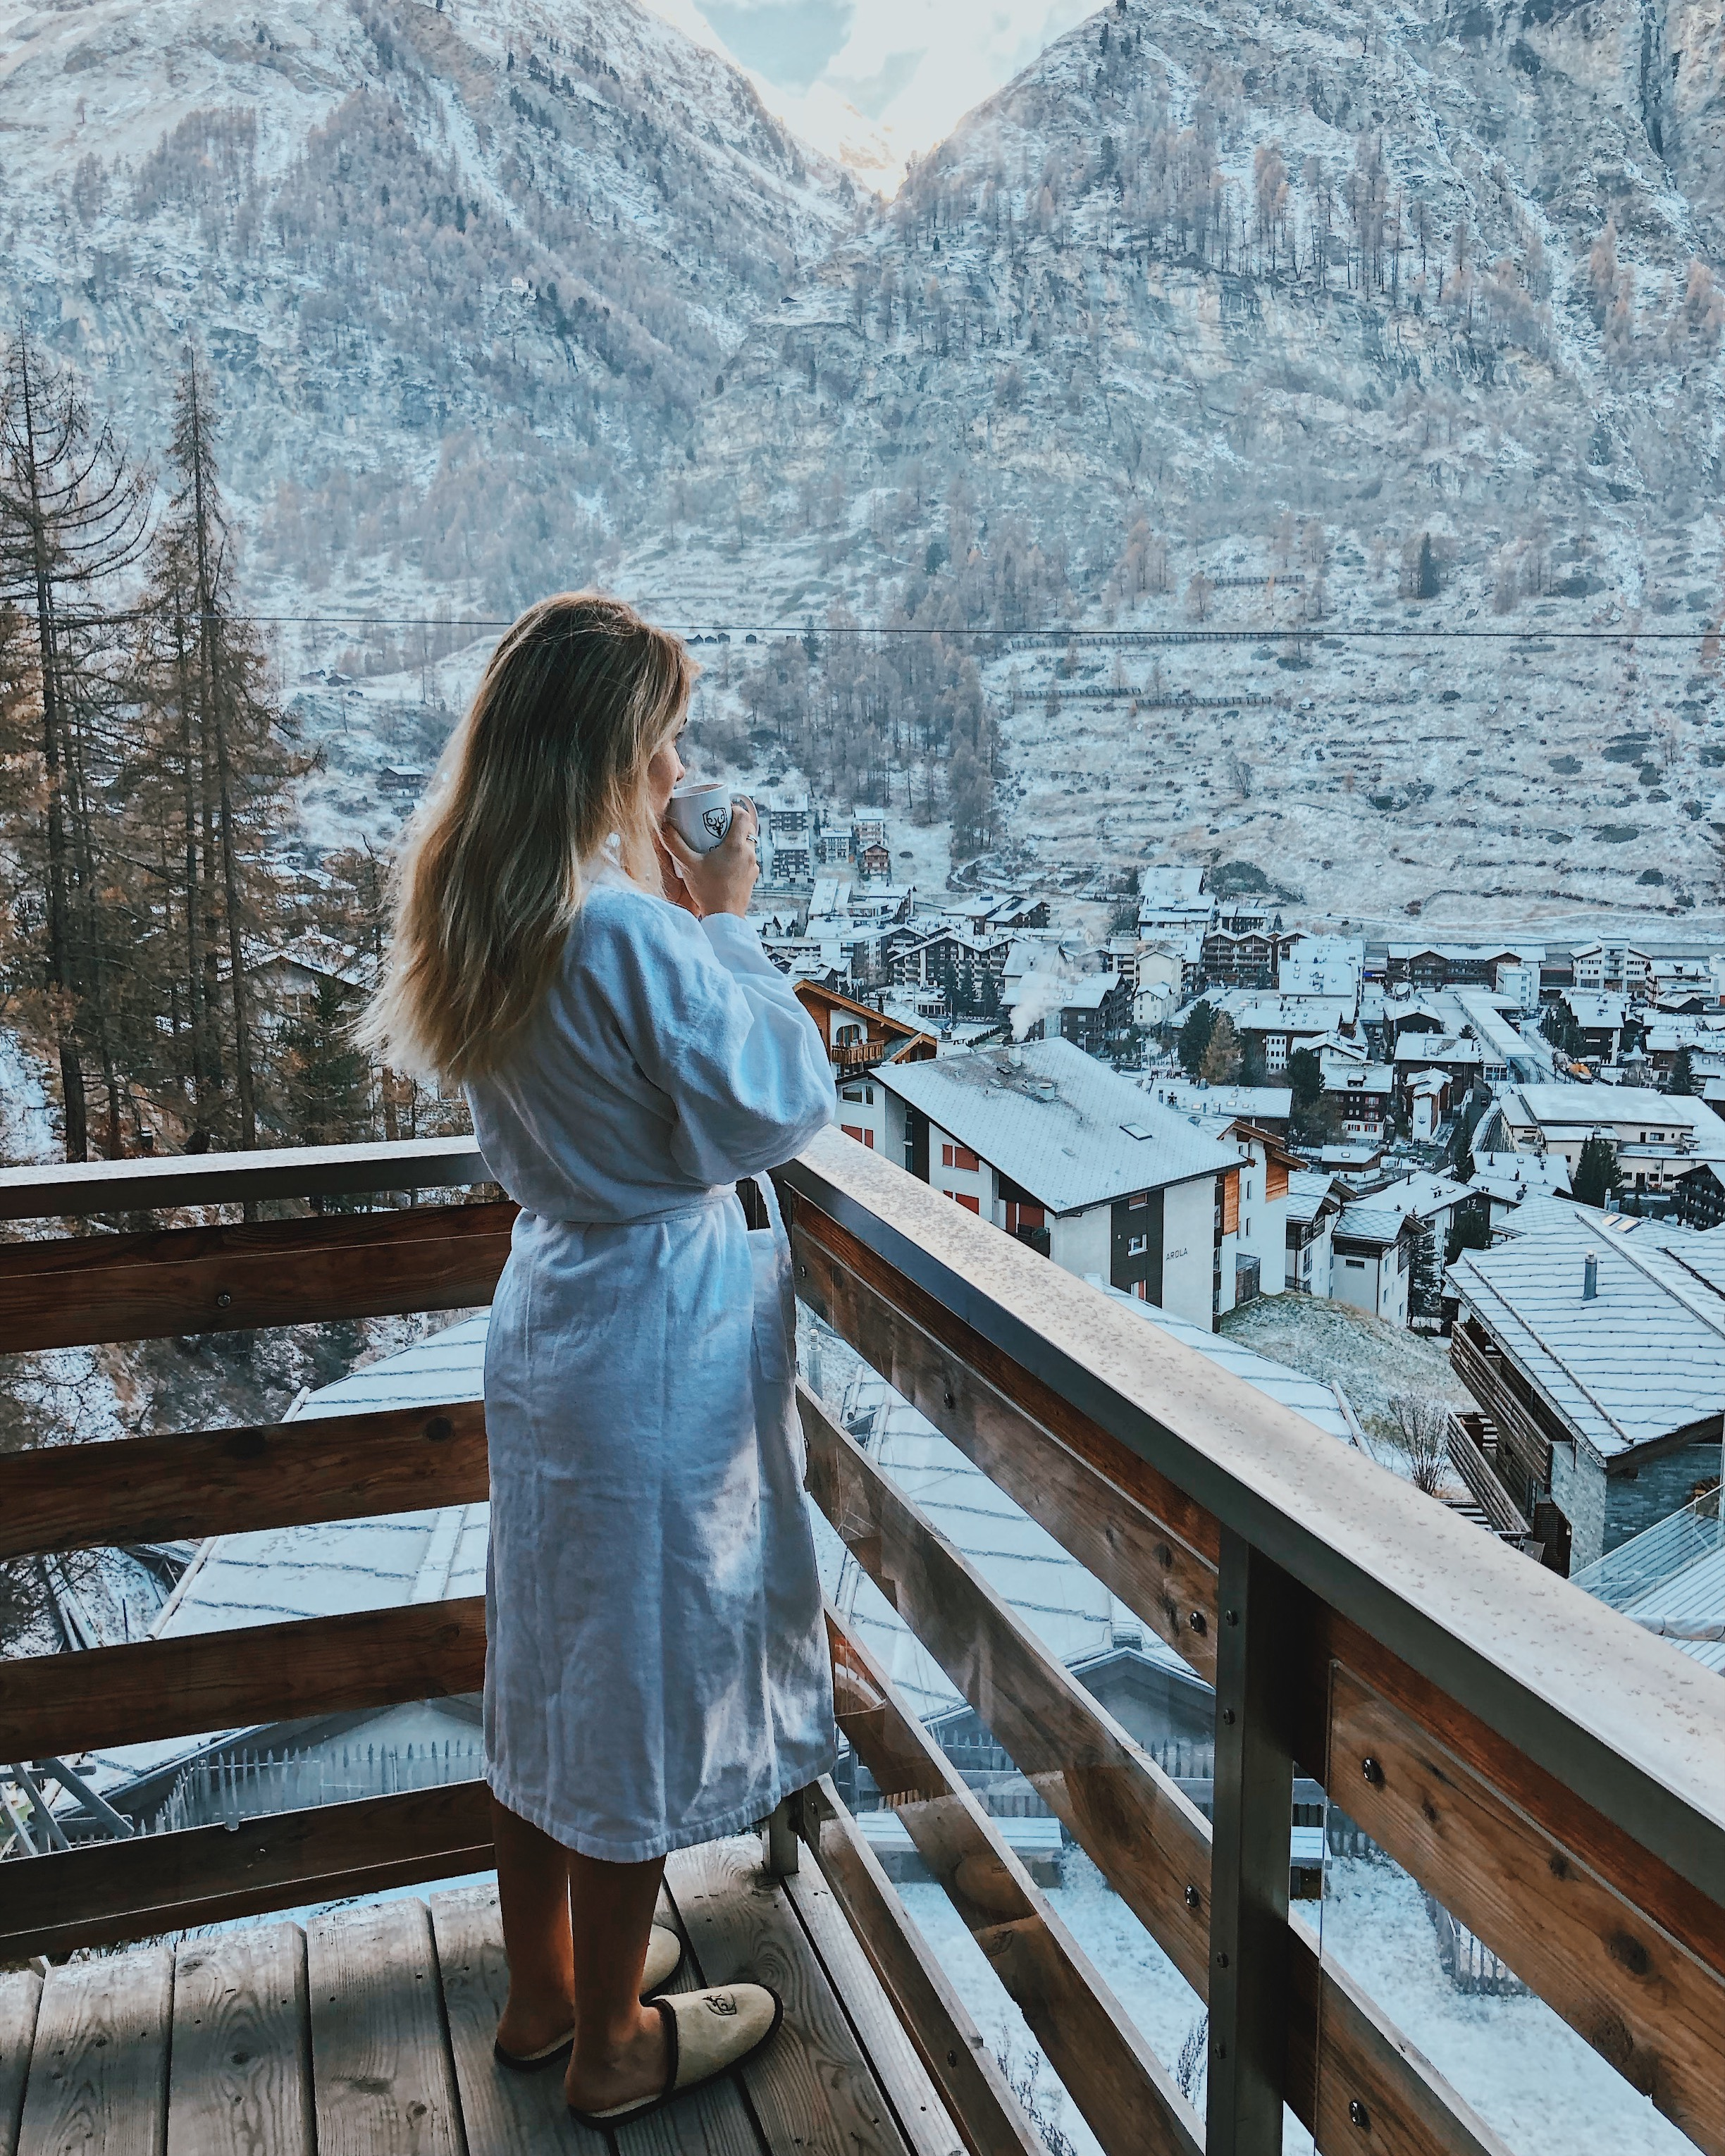 Morning views at Cervo Zermatt